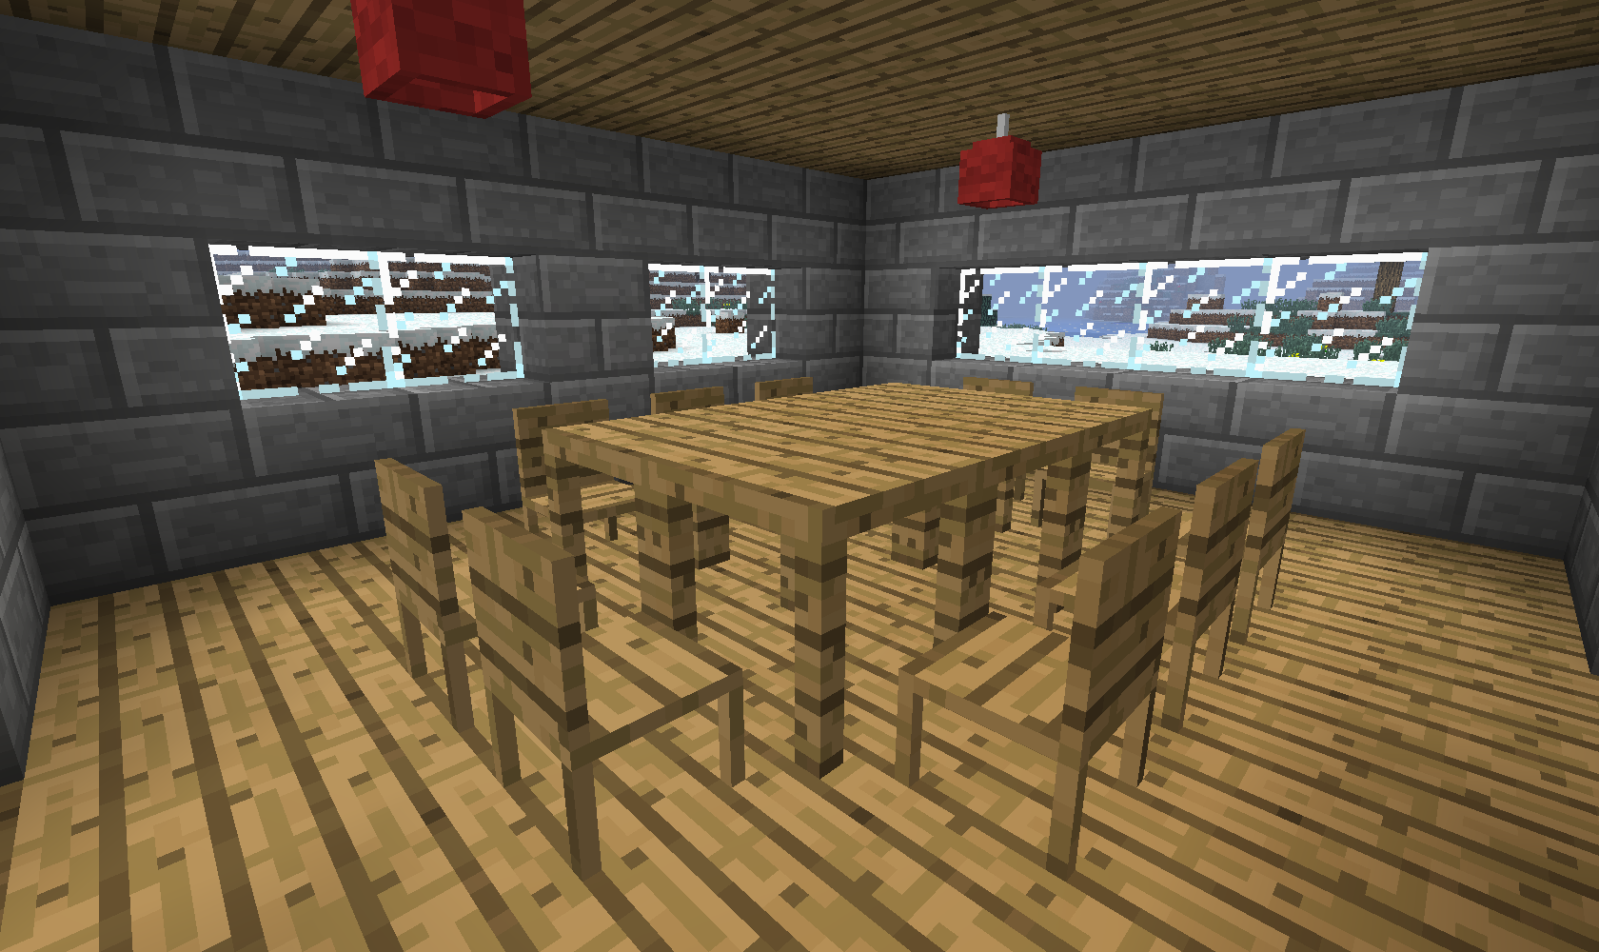 http://www.beginminecraft.com/wp-content/uploads/2013/05/Jammy-Furniture-Mod-711.png